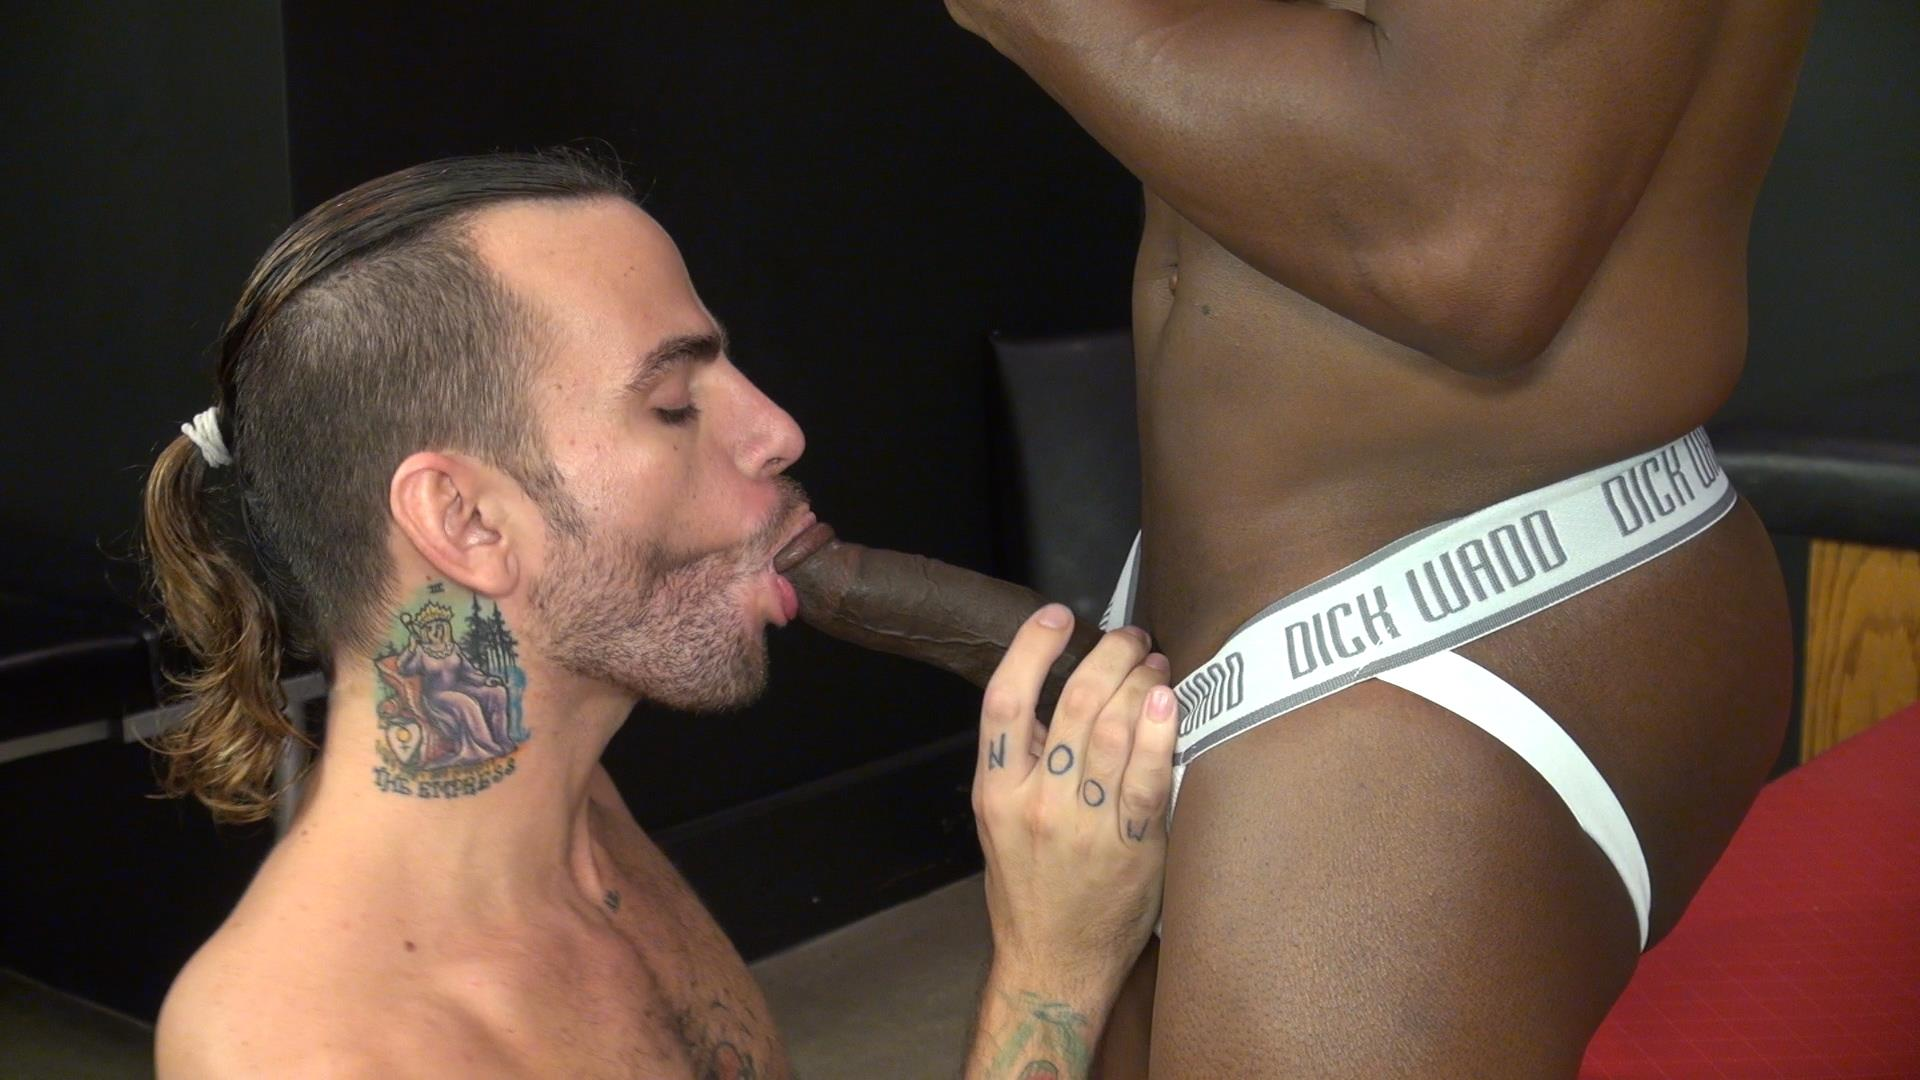 Raw-and-Rough-Champ-Robinson-Lukas-Cipriani-Knockout-Tigger-Redd-BBBH-Amateur-Gay-Porn-20 White Boy Gets A Breeding By Three Big Black Dicks